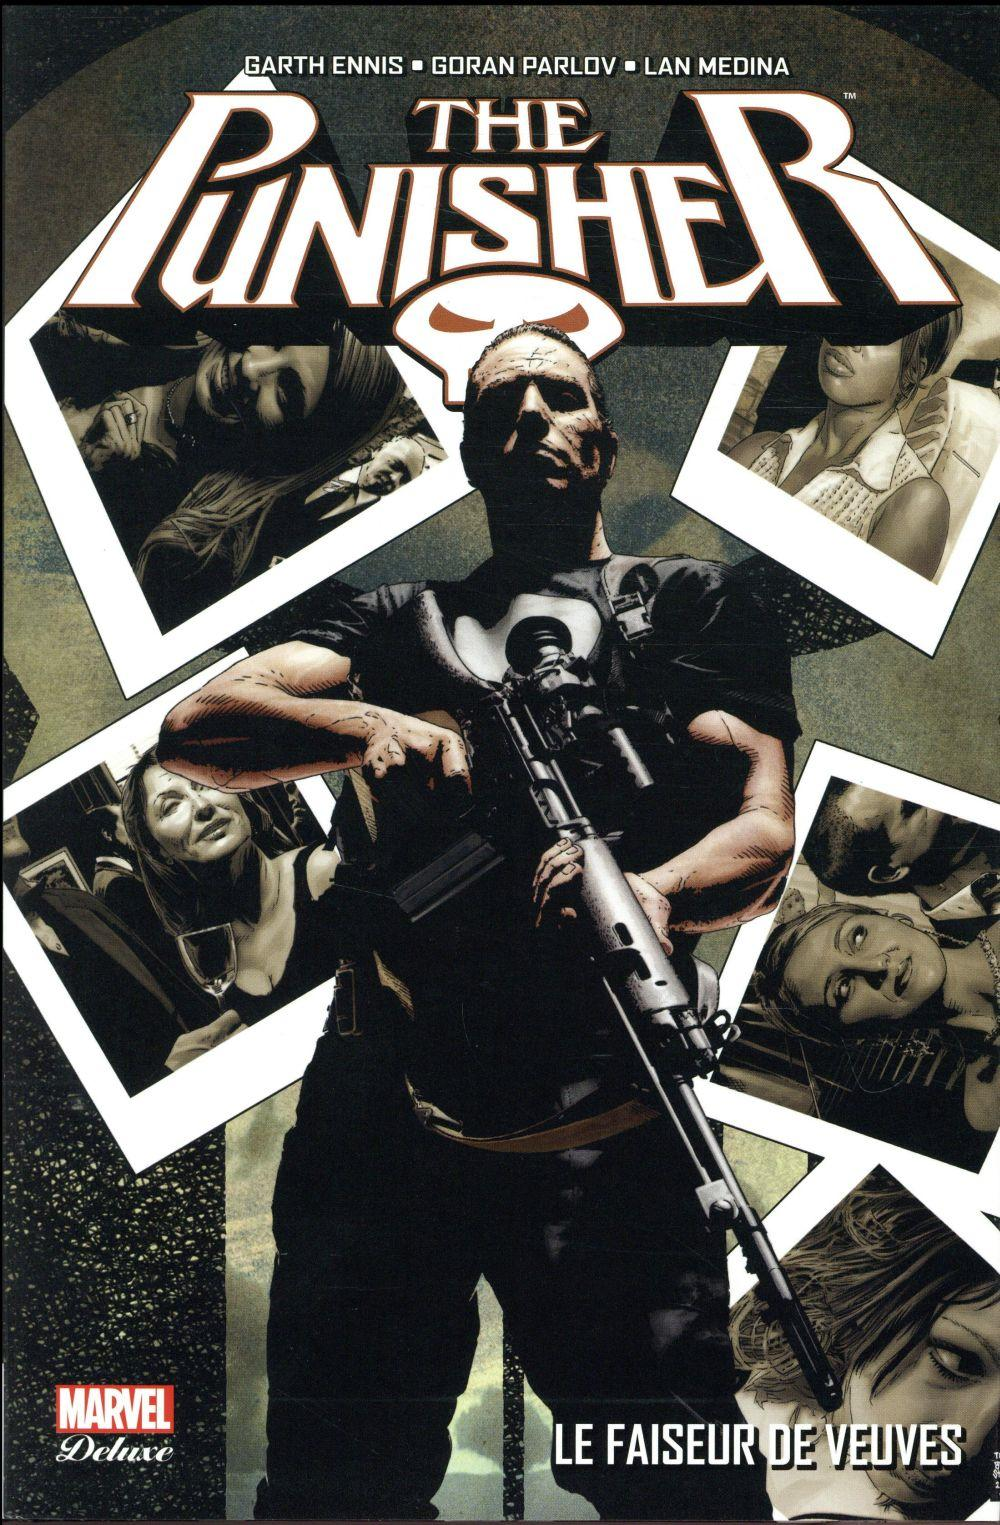 The Punisher T.5 ; le faiseur de veuves  - Garth Ennis  - Goran Parlov  - Lan Medina